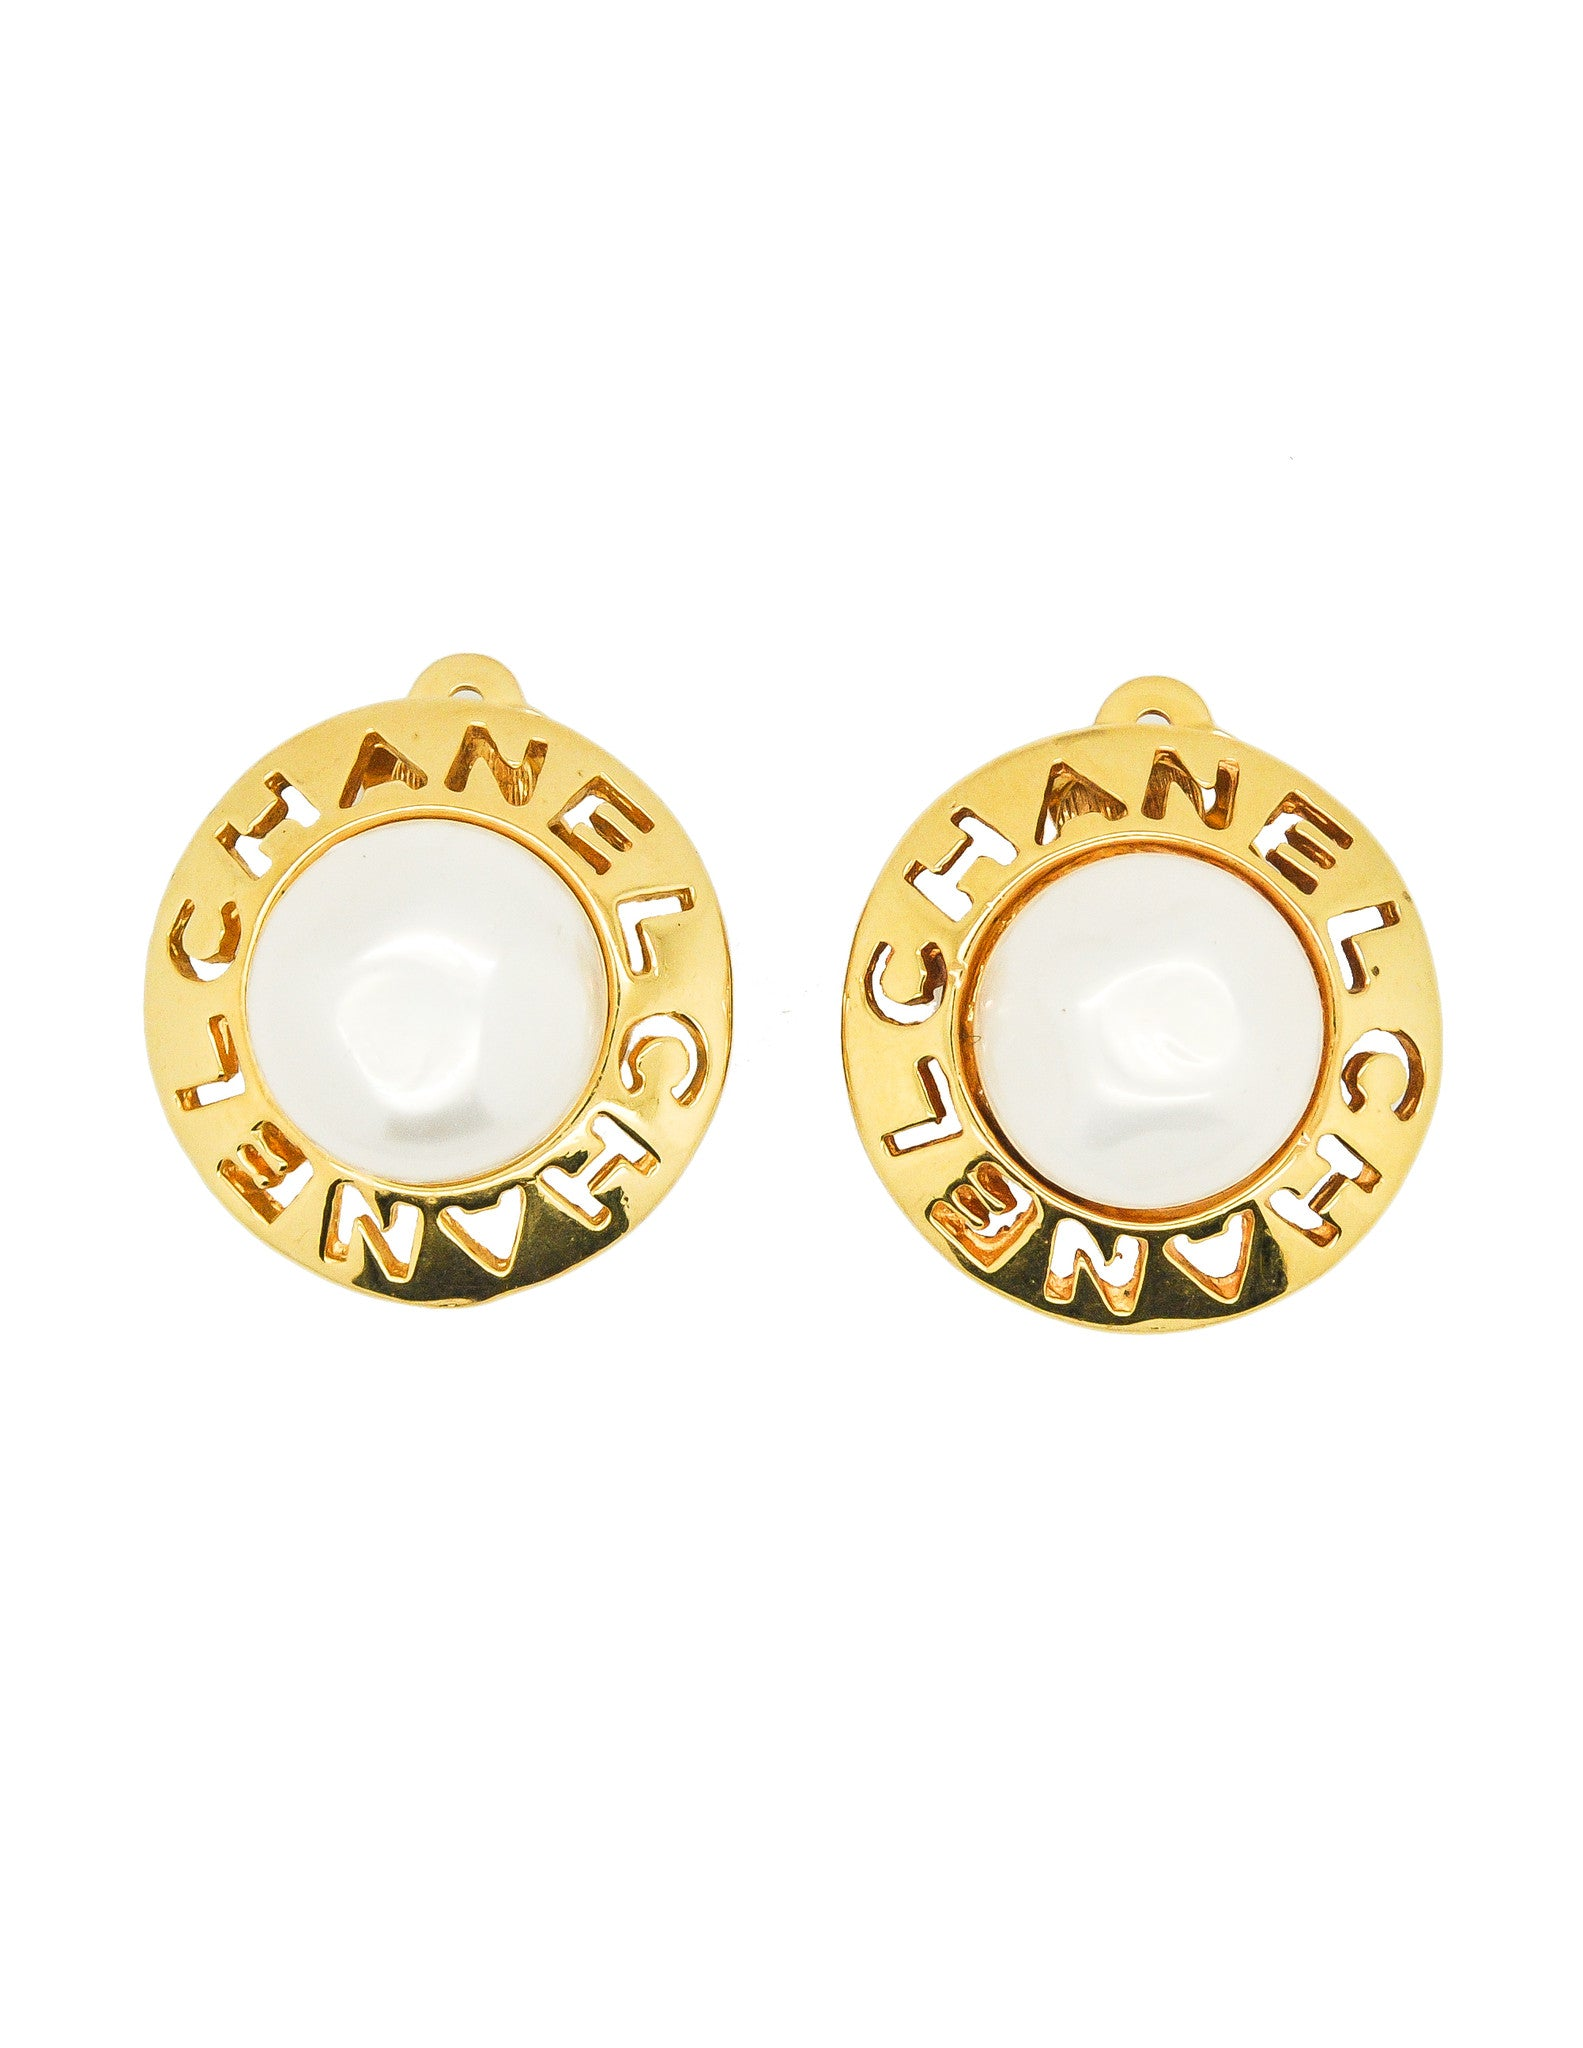 Chanel Vintage Cut Out Pearl Earrings - Amarcord Vintage Fashion  - 1